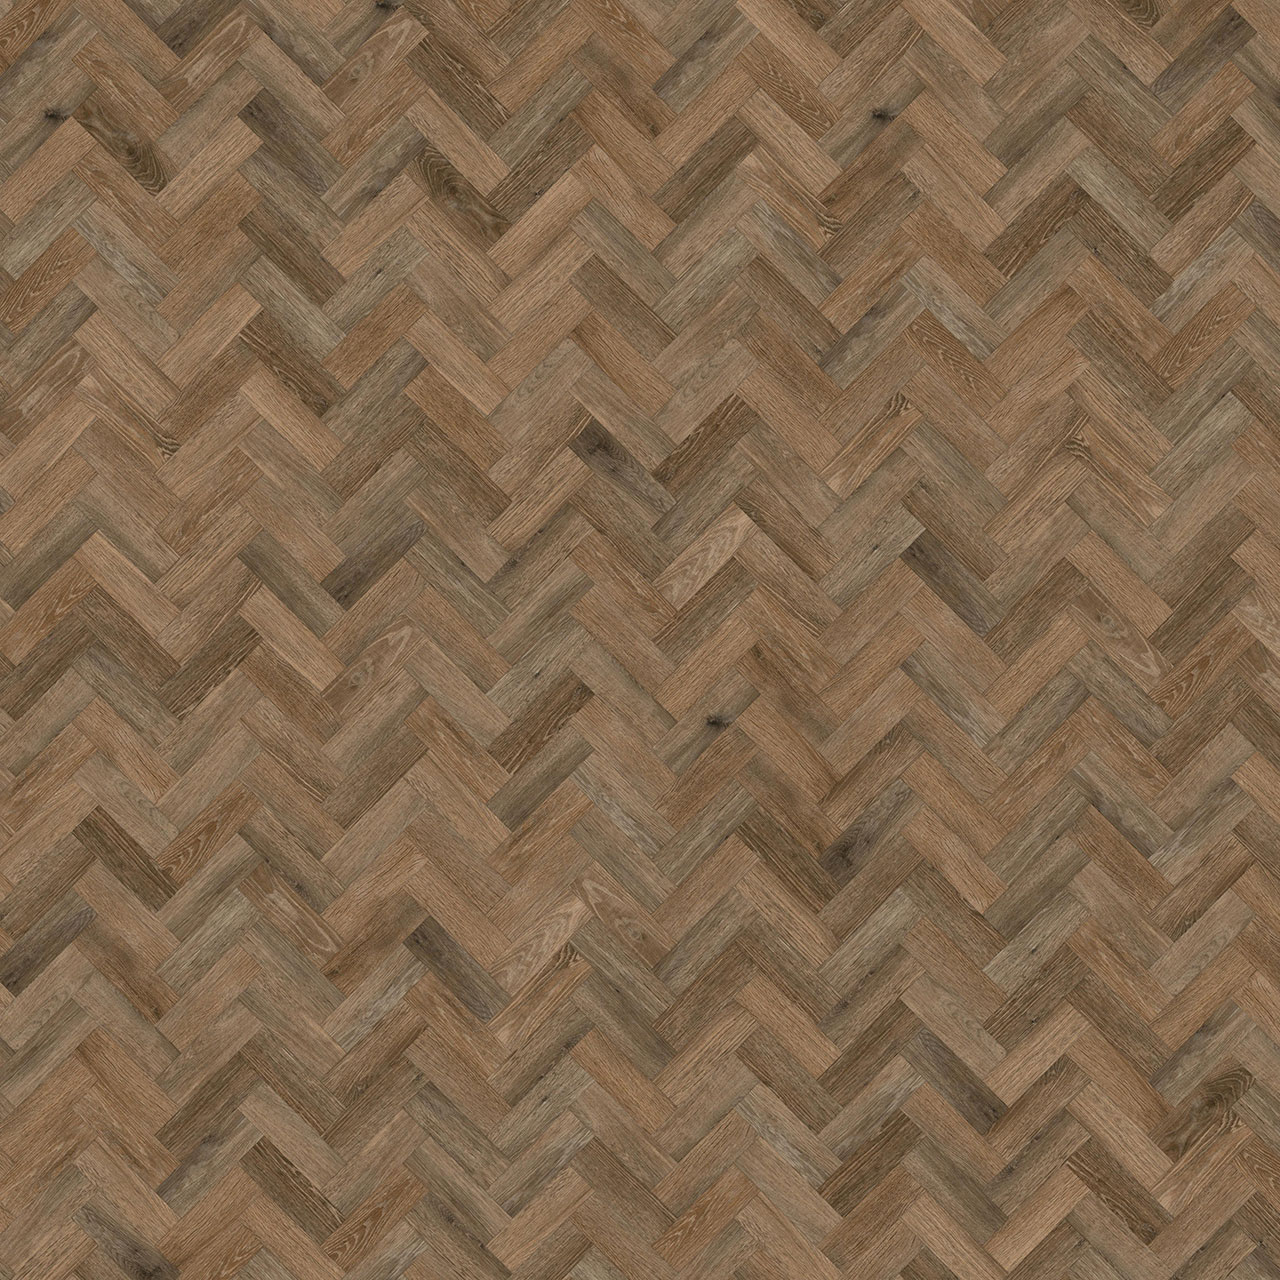 Amtico Spacia Noble Oak Parquet 3x9 SS5W3030